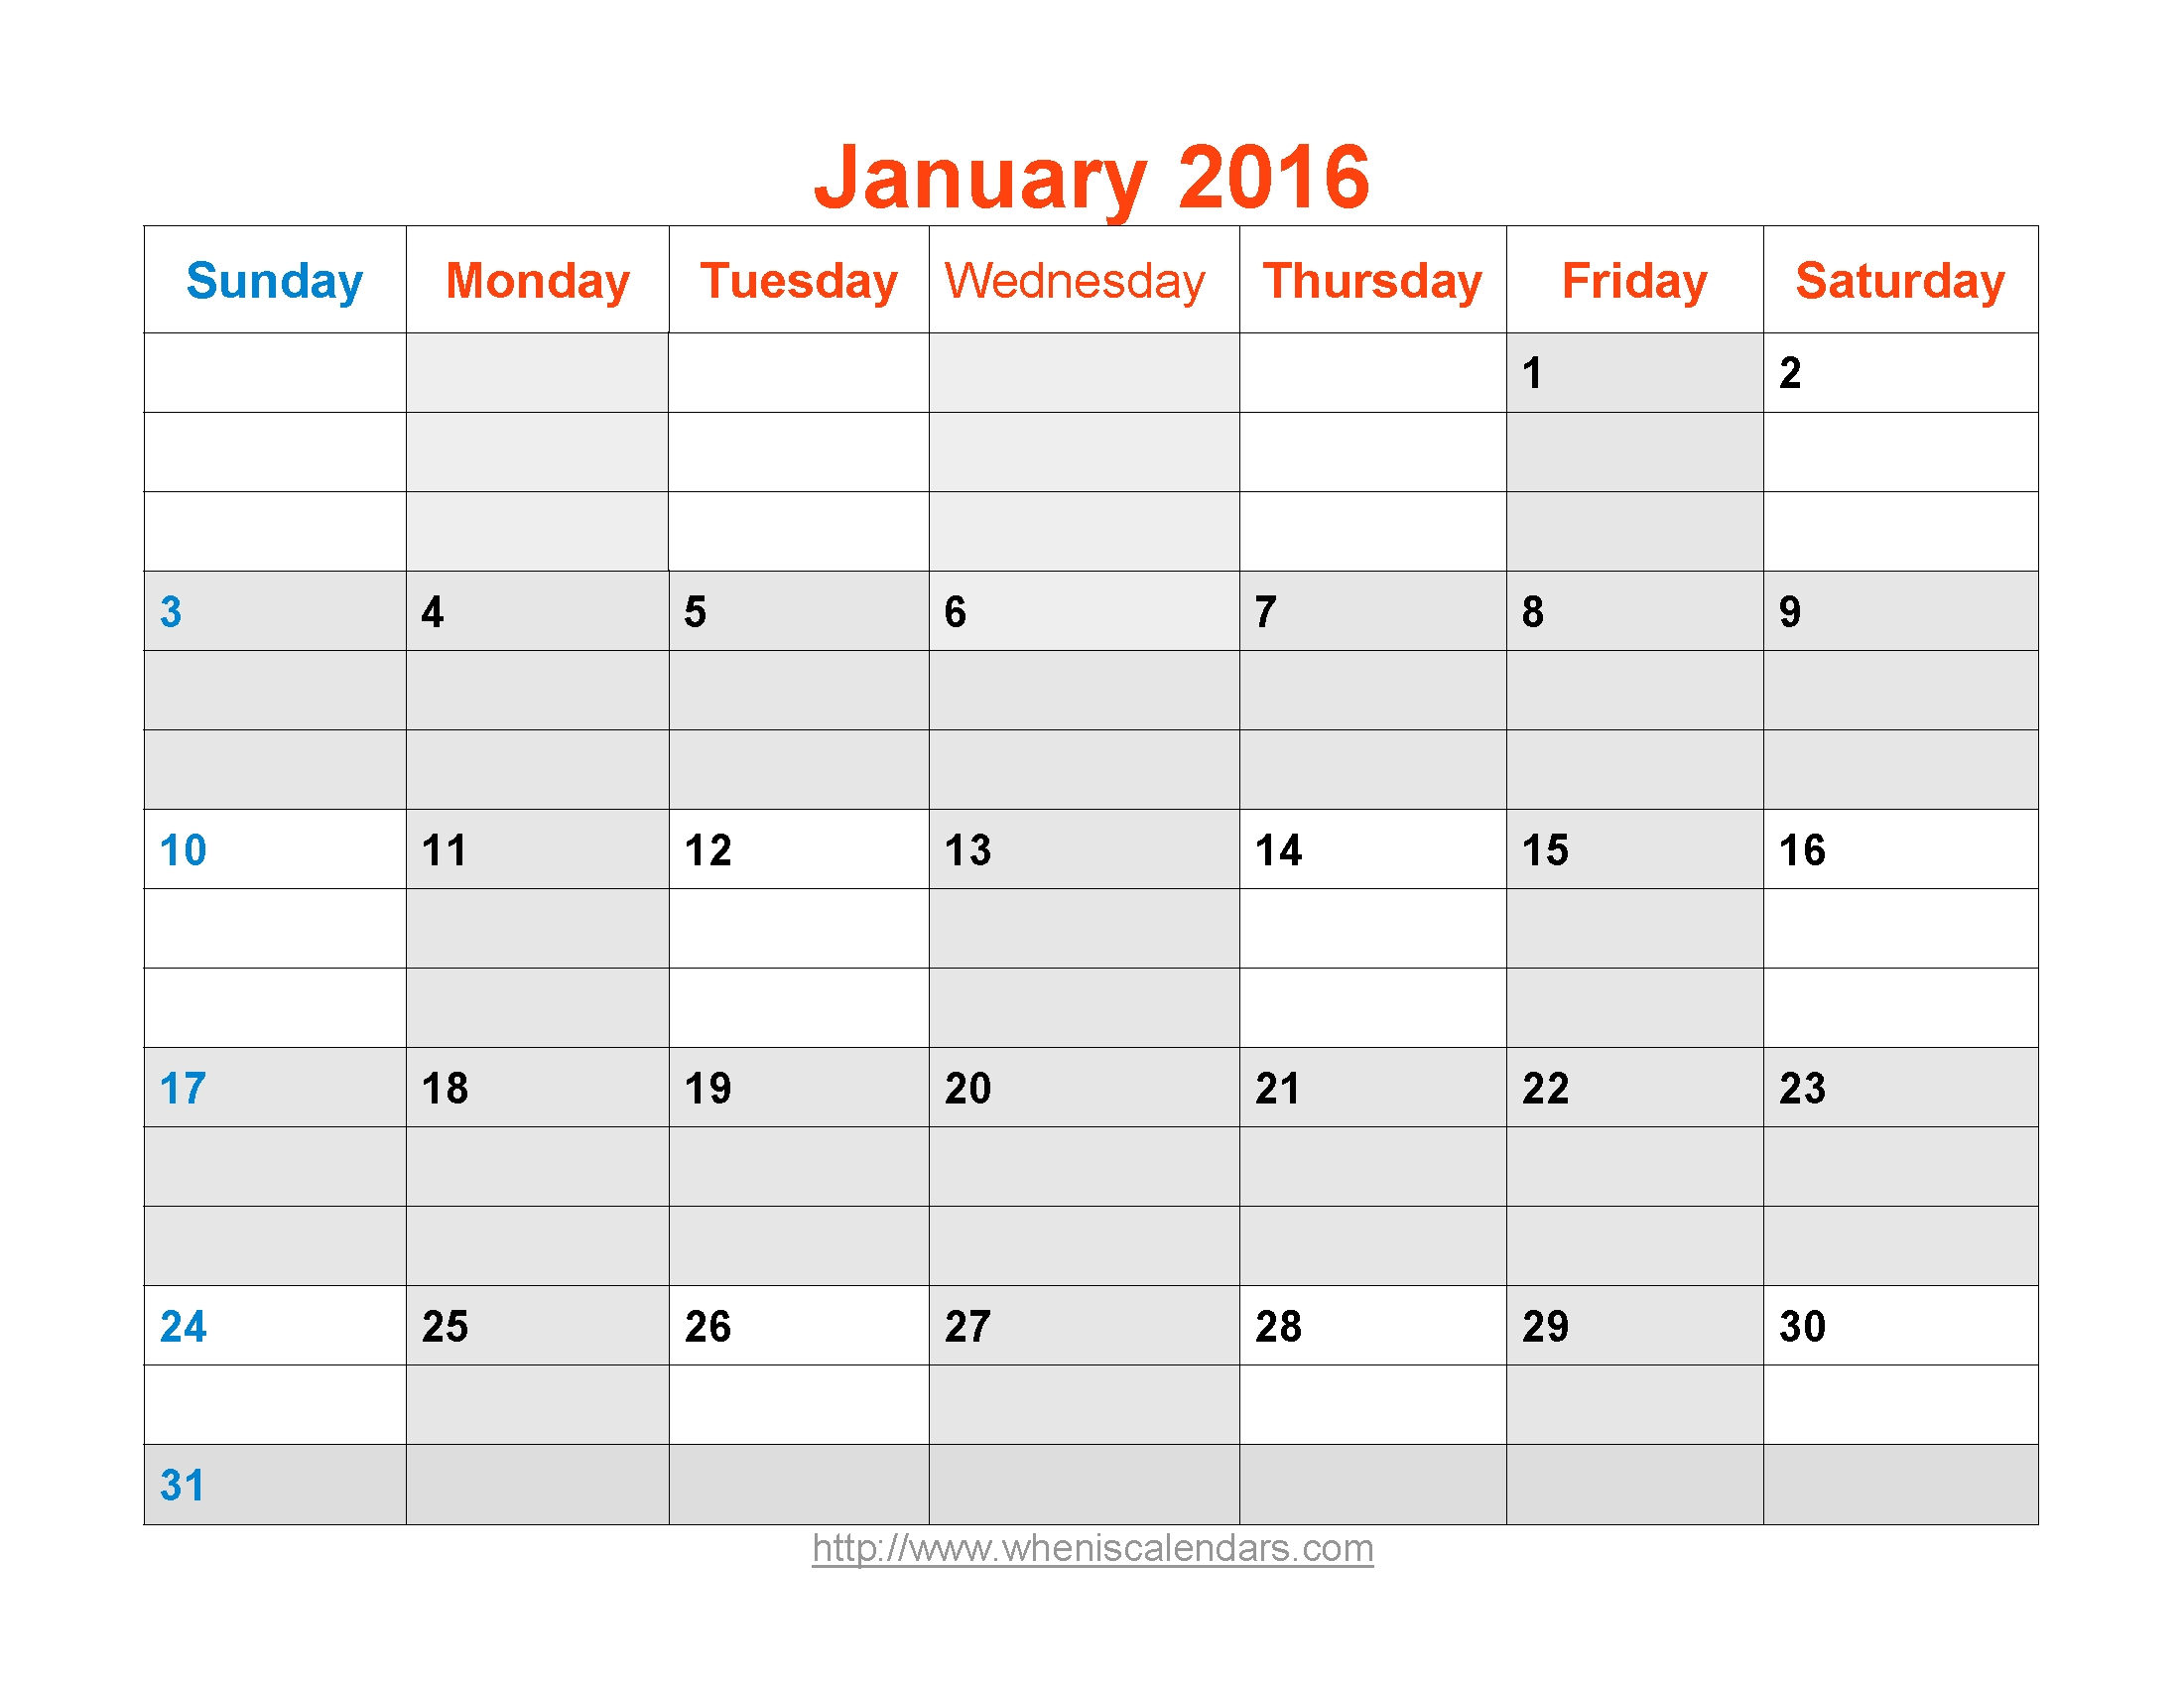 January 2016 Calendar Printable Template Word Pdf Image3abry